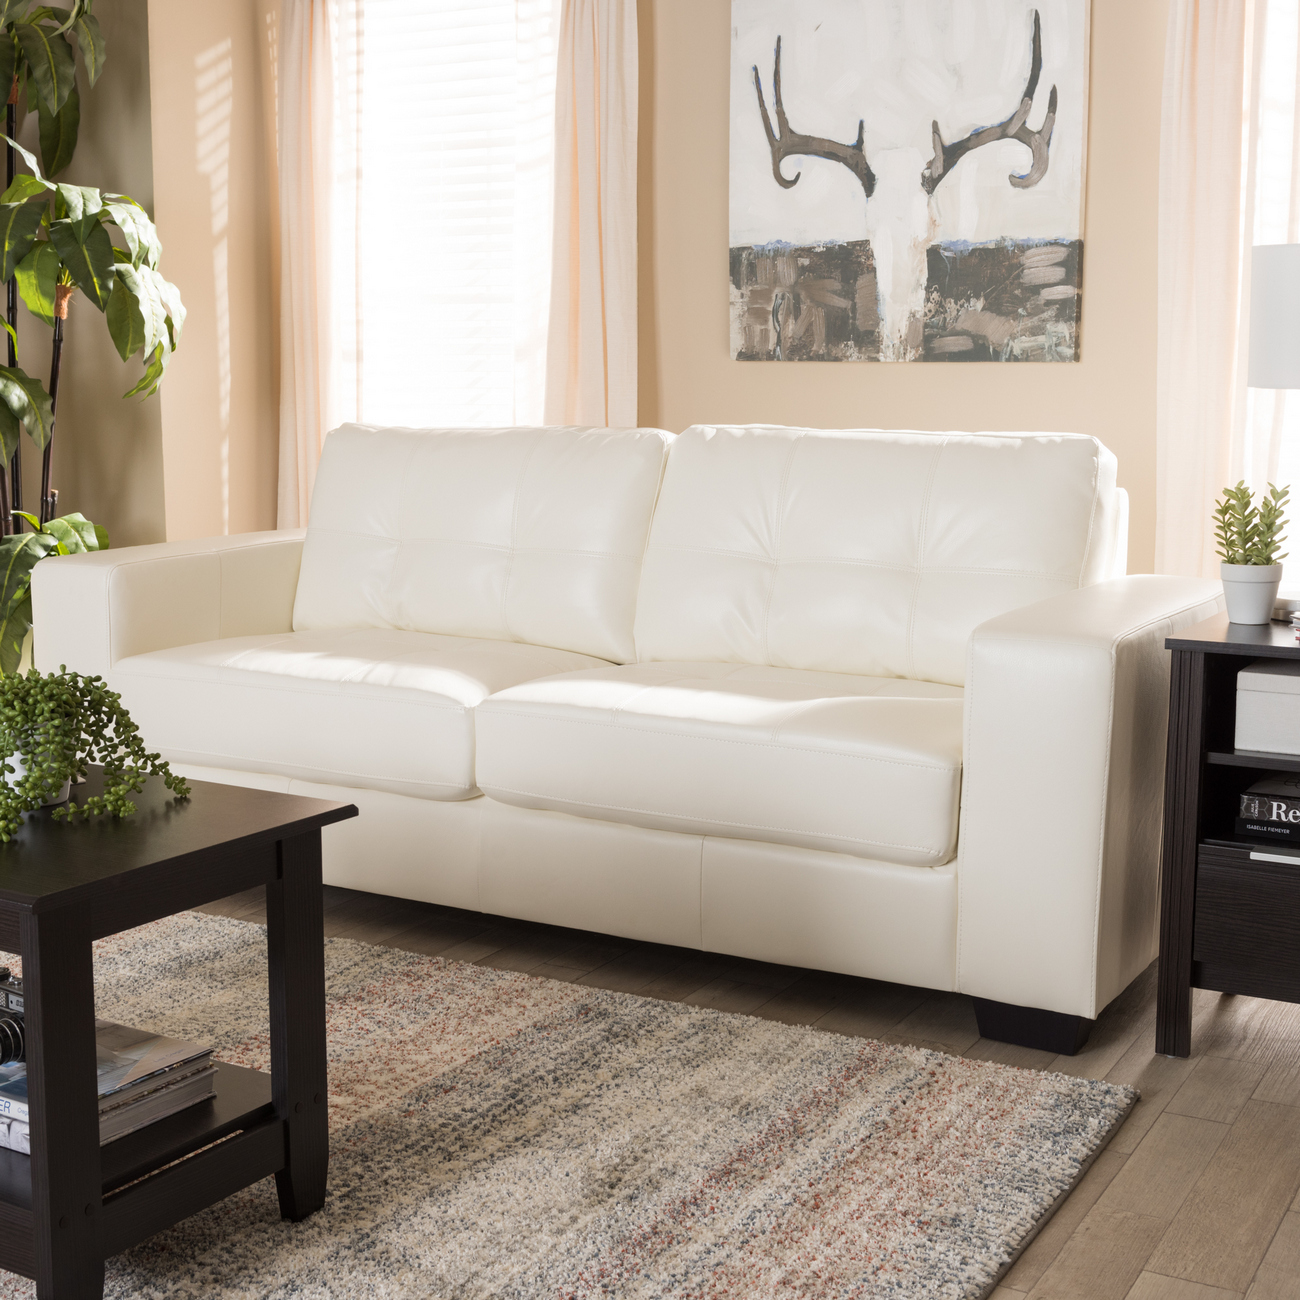 Baxton Studio Adalynn Modern & Contemporary White Faux Leather Upholstered Sofa - U2470-White-SF (IDS06LT-SF)